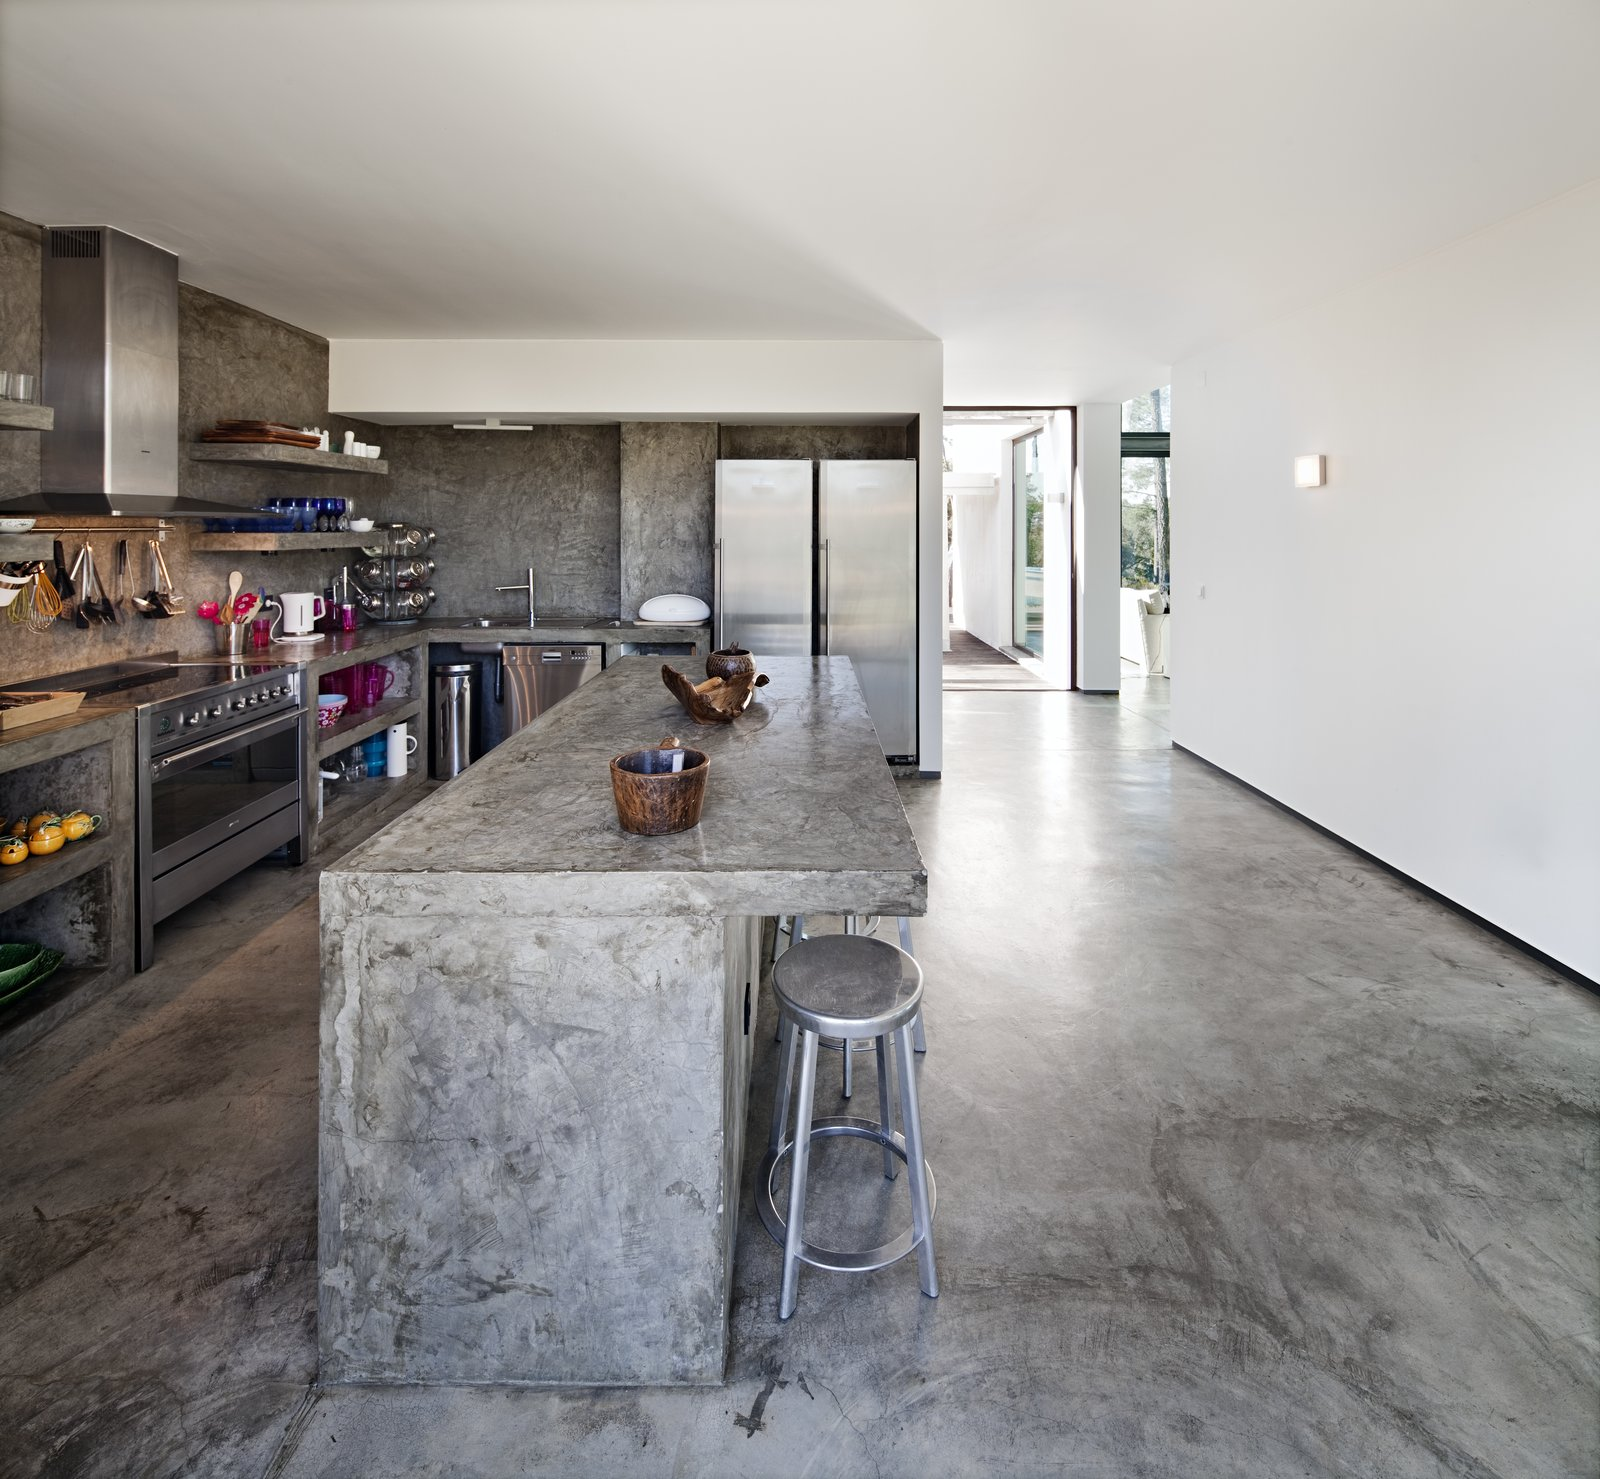 Kitchen, Concrete, Dishwasher, Range Hood, Wall Oven, Refrigerator, Drop In, Concrete, Open, Wall, Cooktops, Ceiling, and Concrete  Best Kitchen Concrete Cooktops Wall Refrigerator Photos from Escape to a Light-Filled, Beach-Meets-Forest Retreat in Portugal